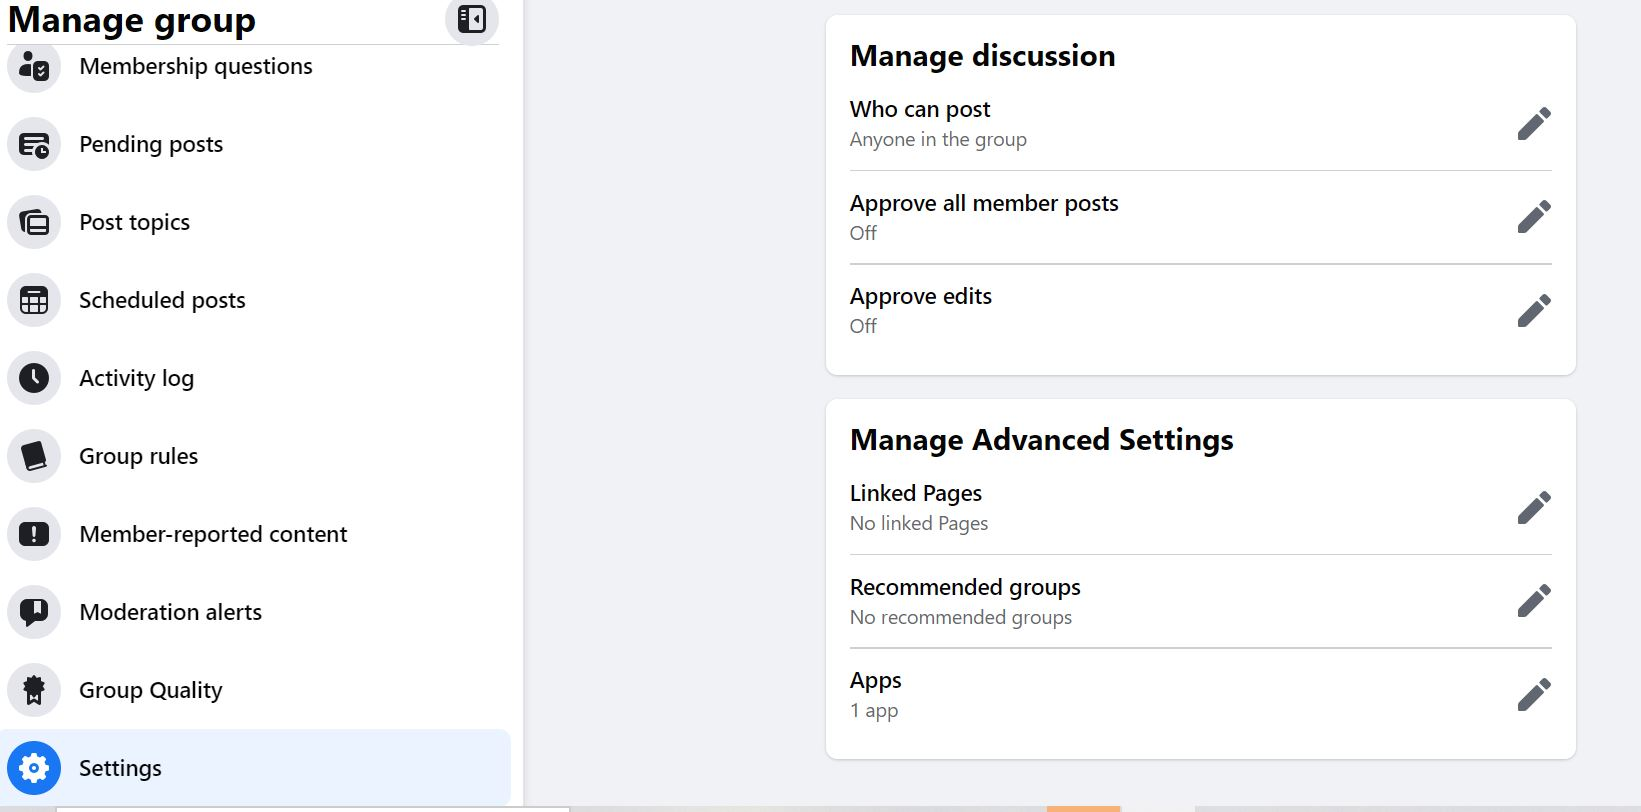 How to give zoom app permission to access Facebook Group